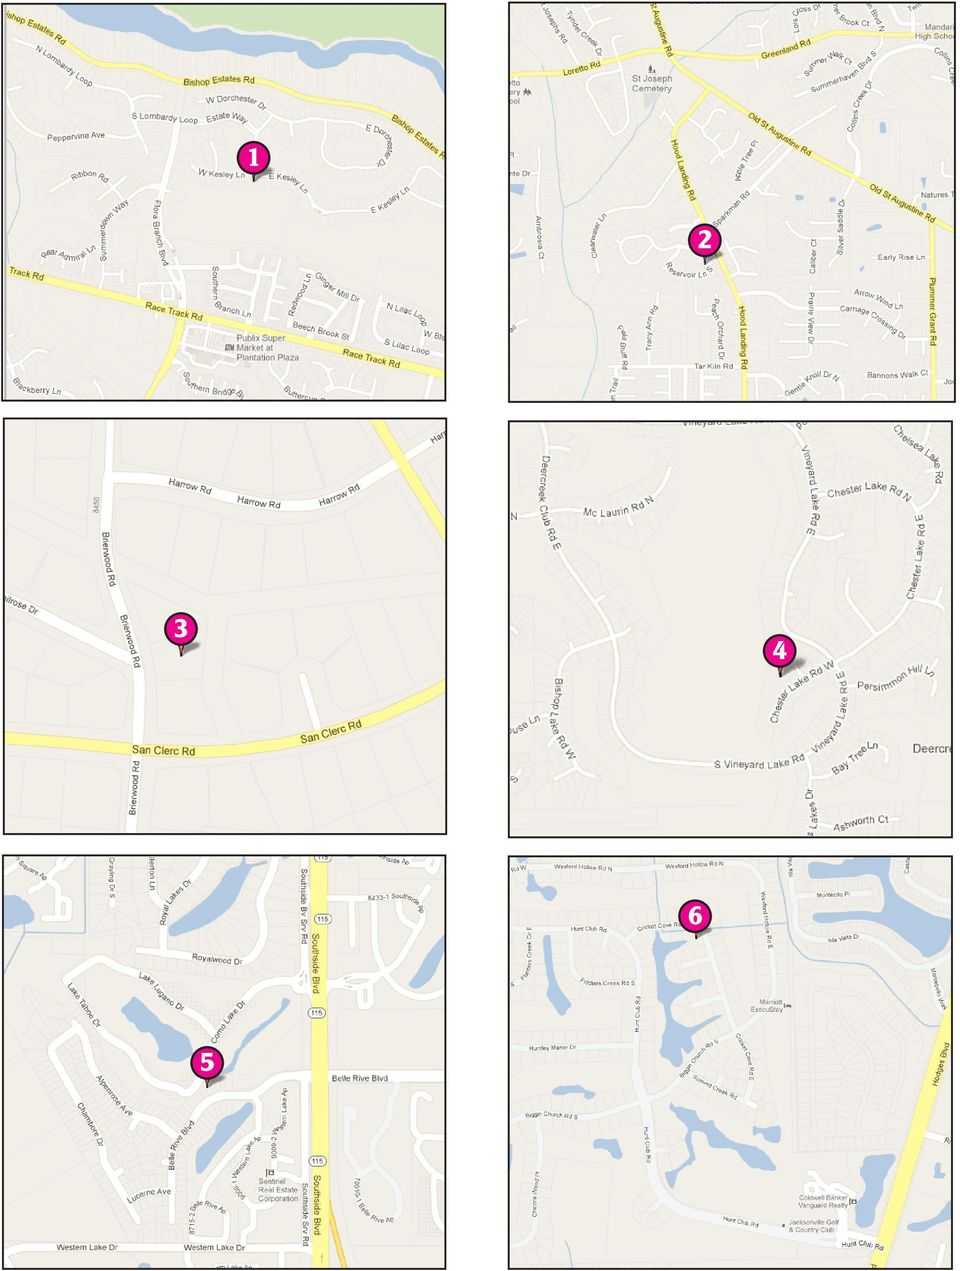 .. 2 Address 8483 Brierwood Rd Jacksonville, FL 32217 Pond Tour oct 2011 Public 10 views Created on Oct 10 By Jason Updated yesterday 3 13780 Windsor Crown Ct W Pond Tour oct 2011 Public 9 views